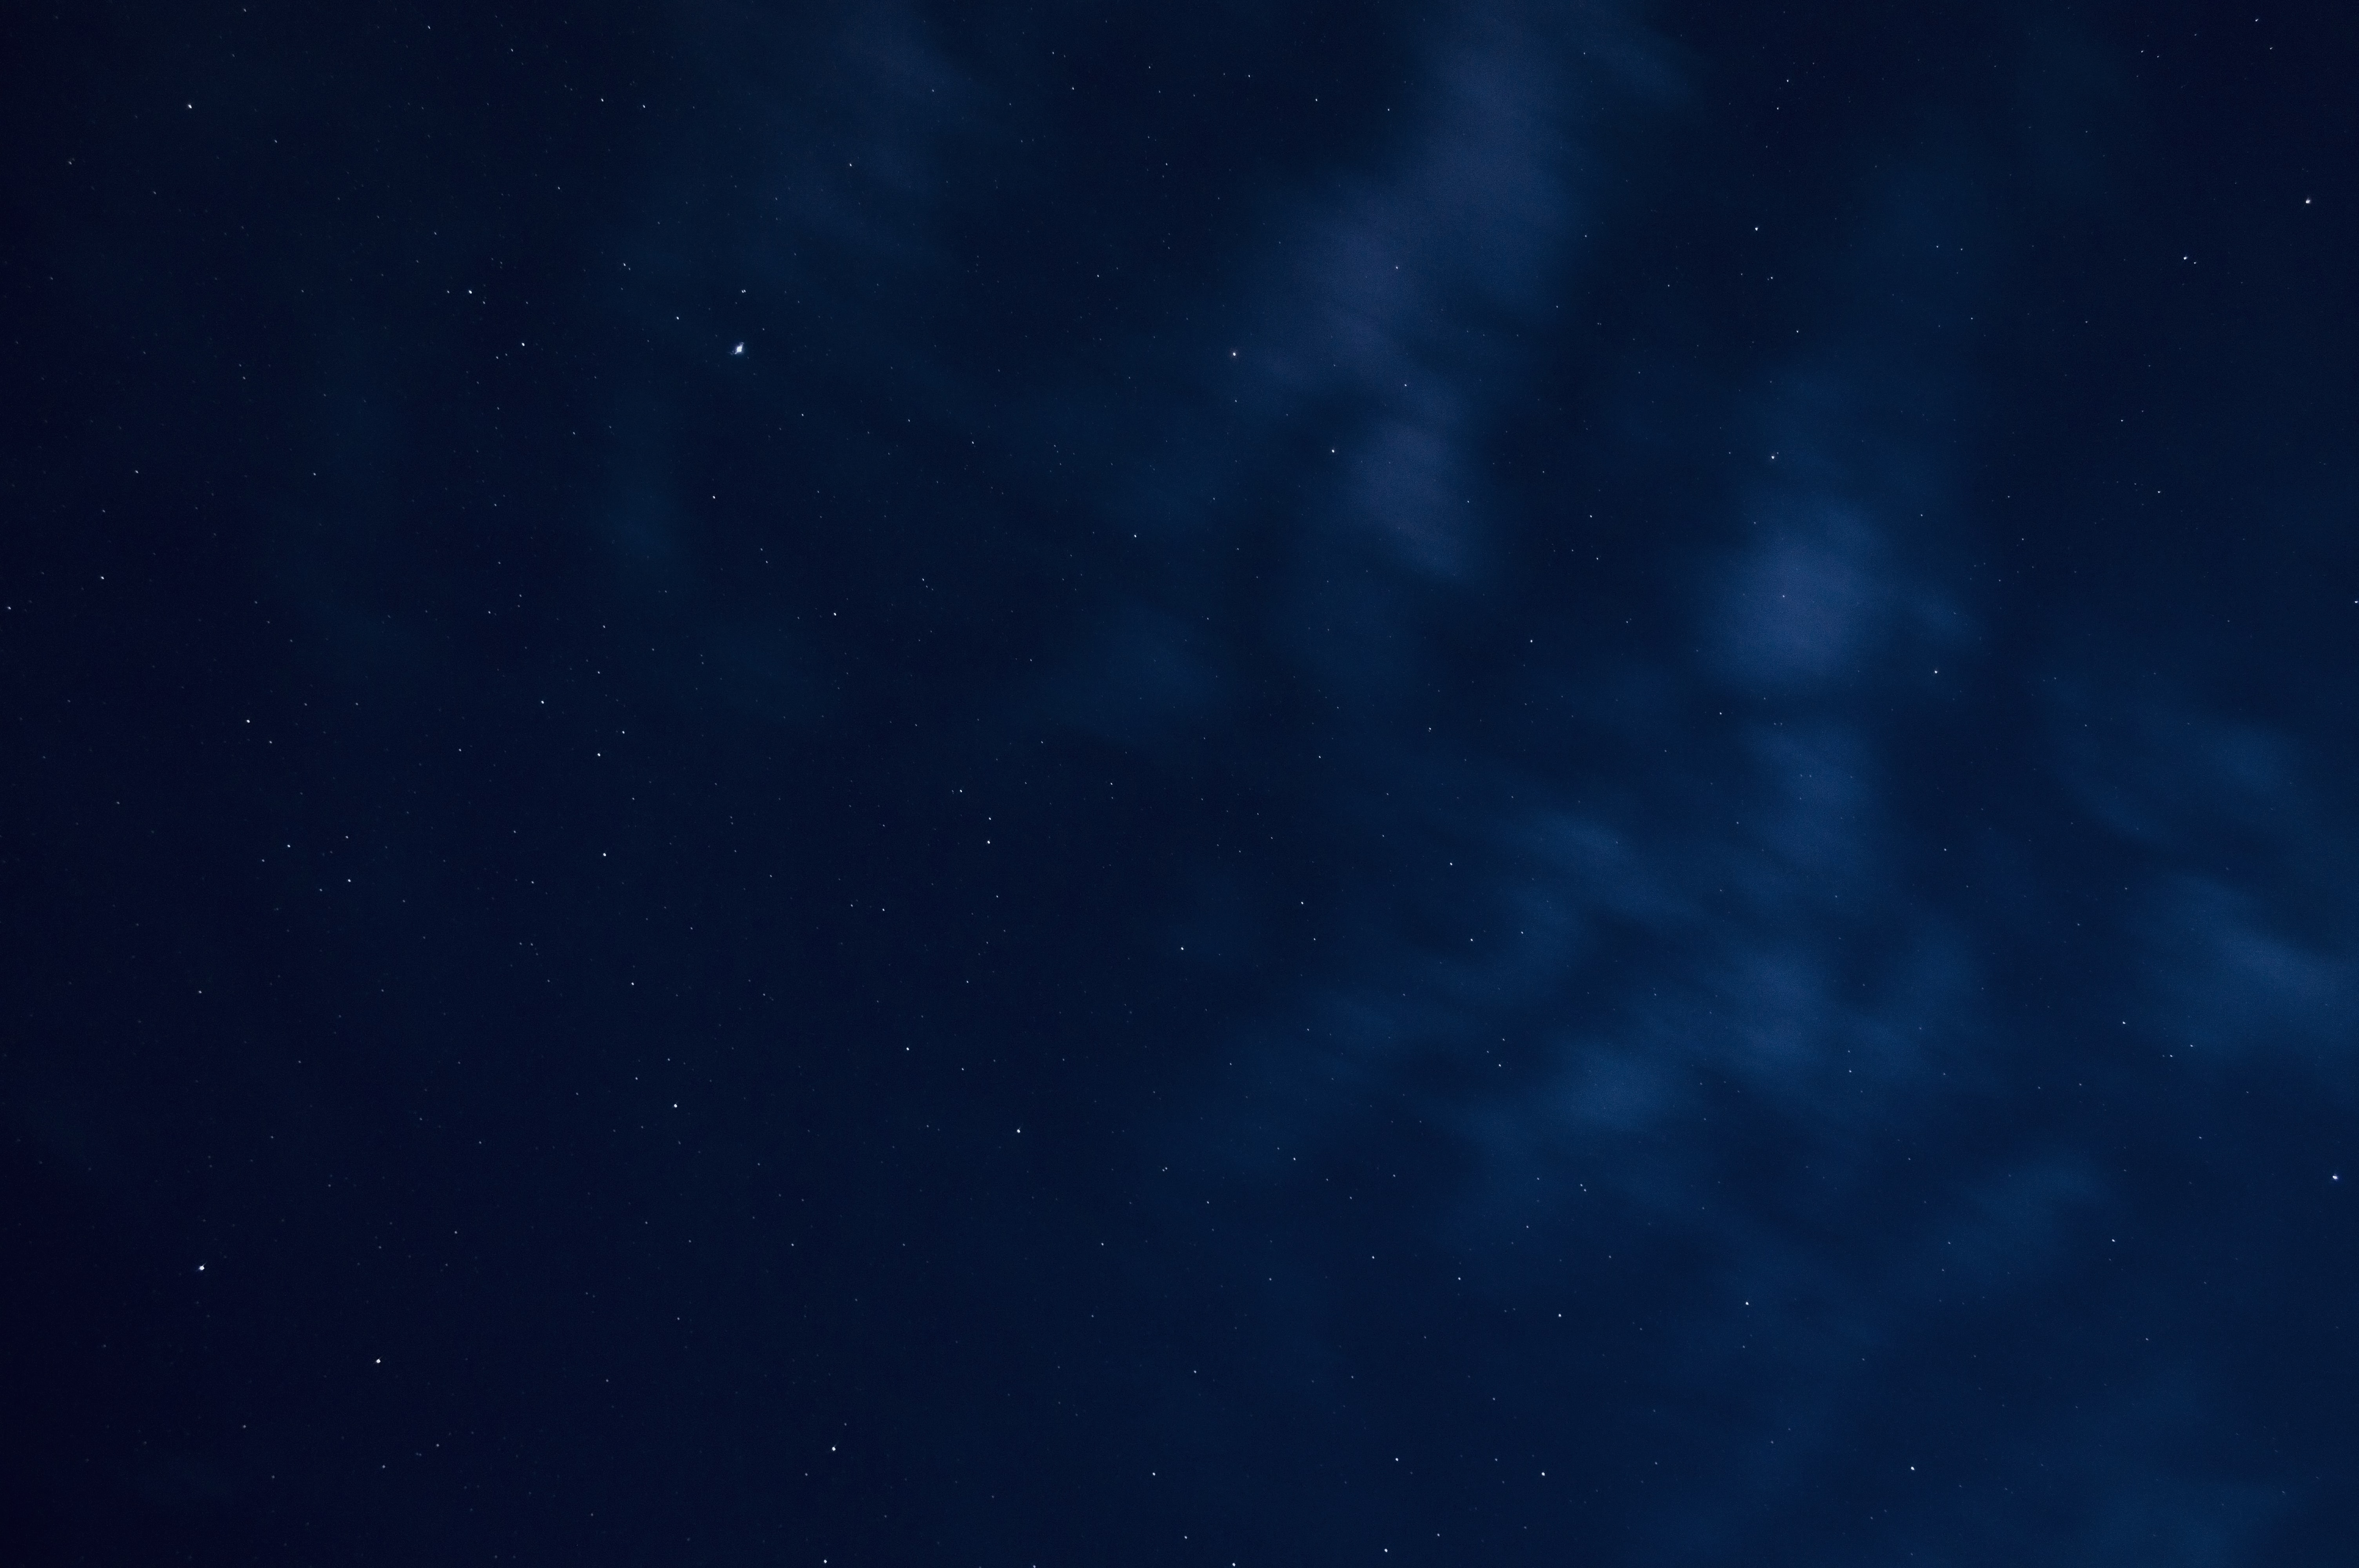 A view of the night showing stars